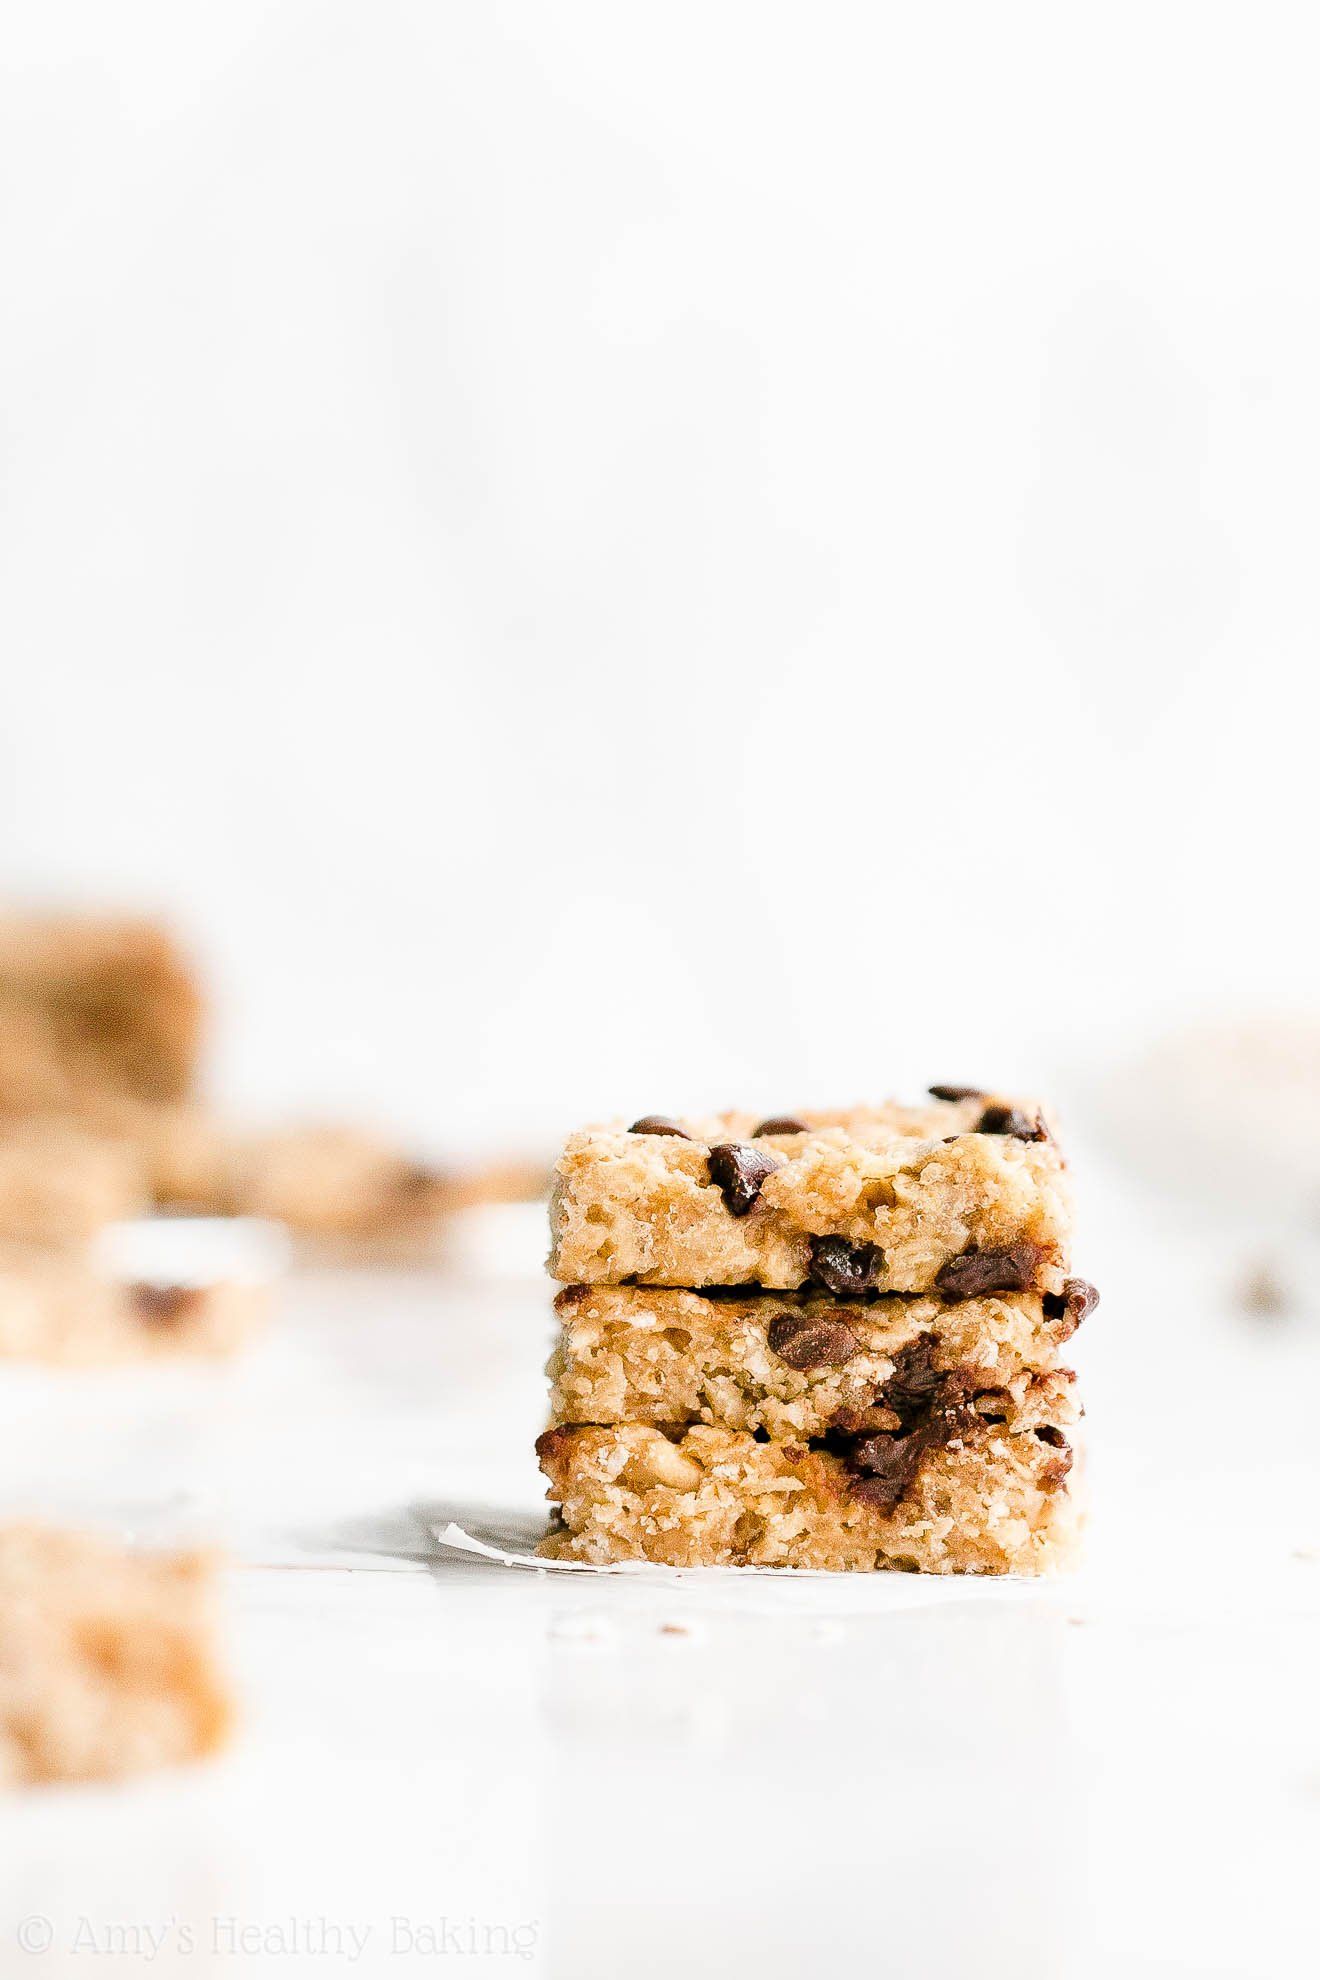 Easy Healthy Weight Watchers Low Fat Chocolate Chip Peanut Butter Granola Bars